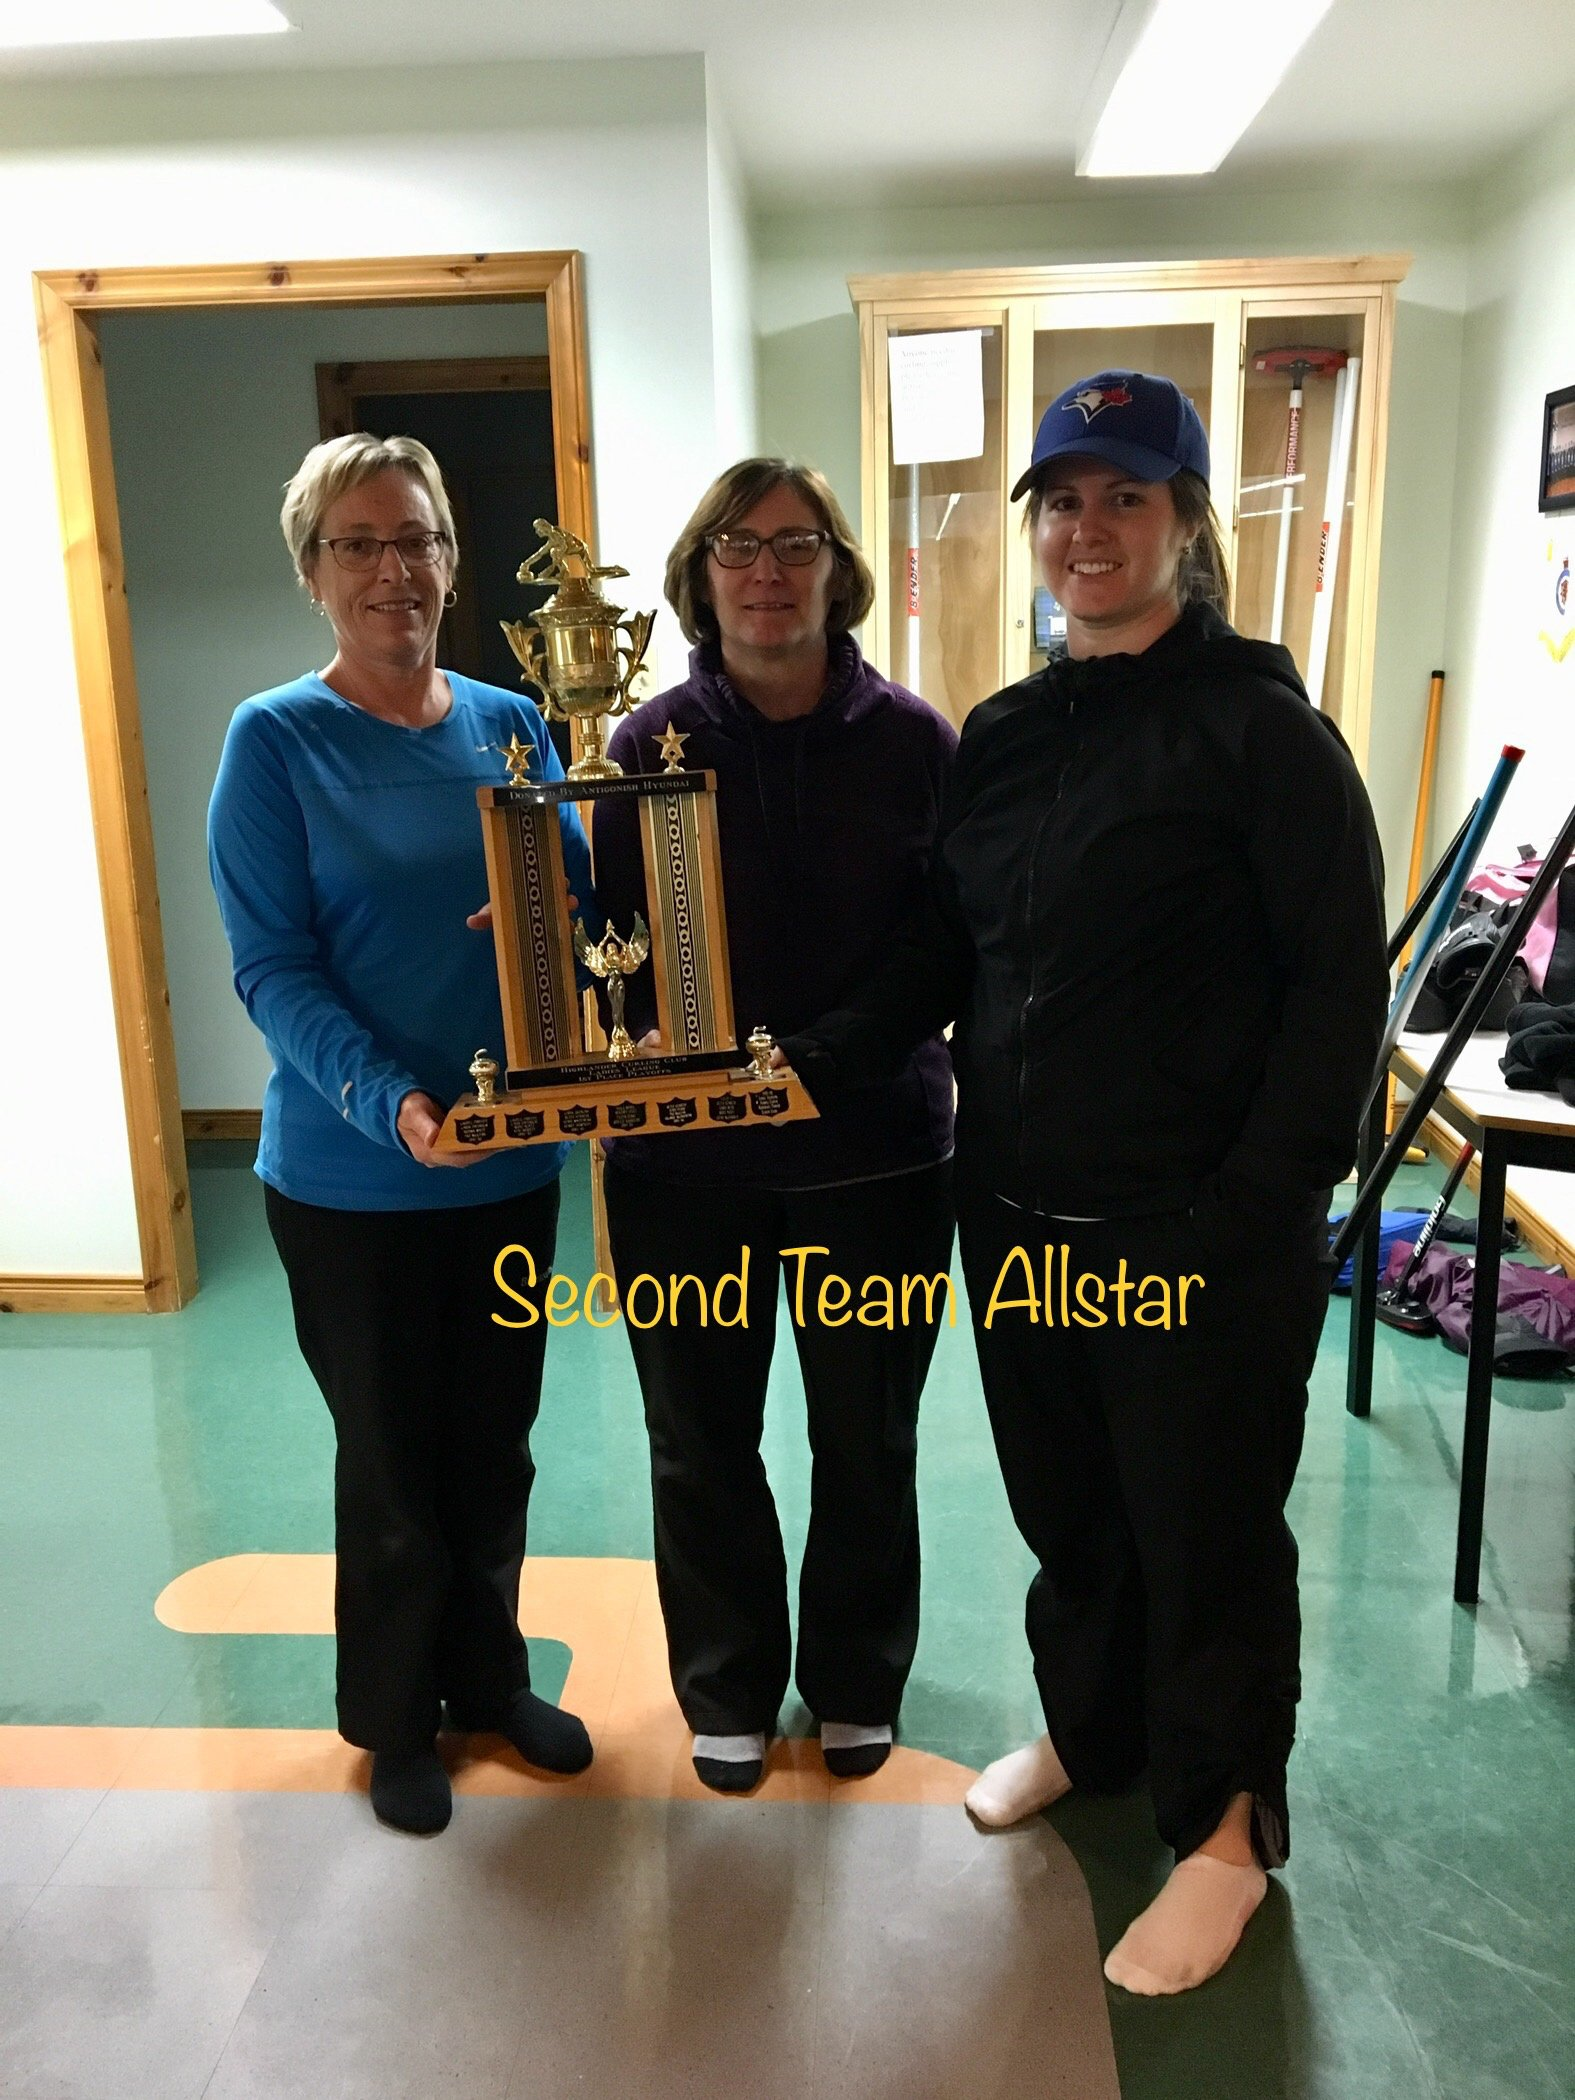 Tuesday Night Ladies Second Team Allstars L to R: Judy Fraser, Joannie Bowie, Katie MacDonald Missing: Marilyn Lohnes